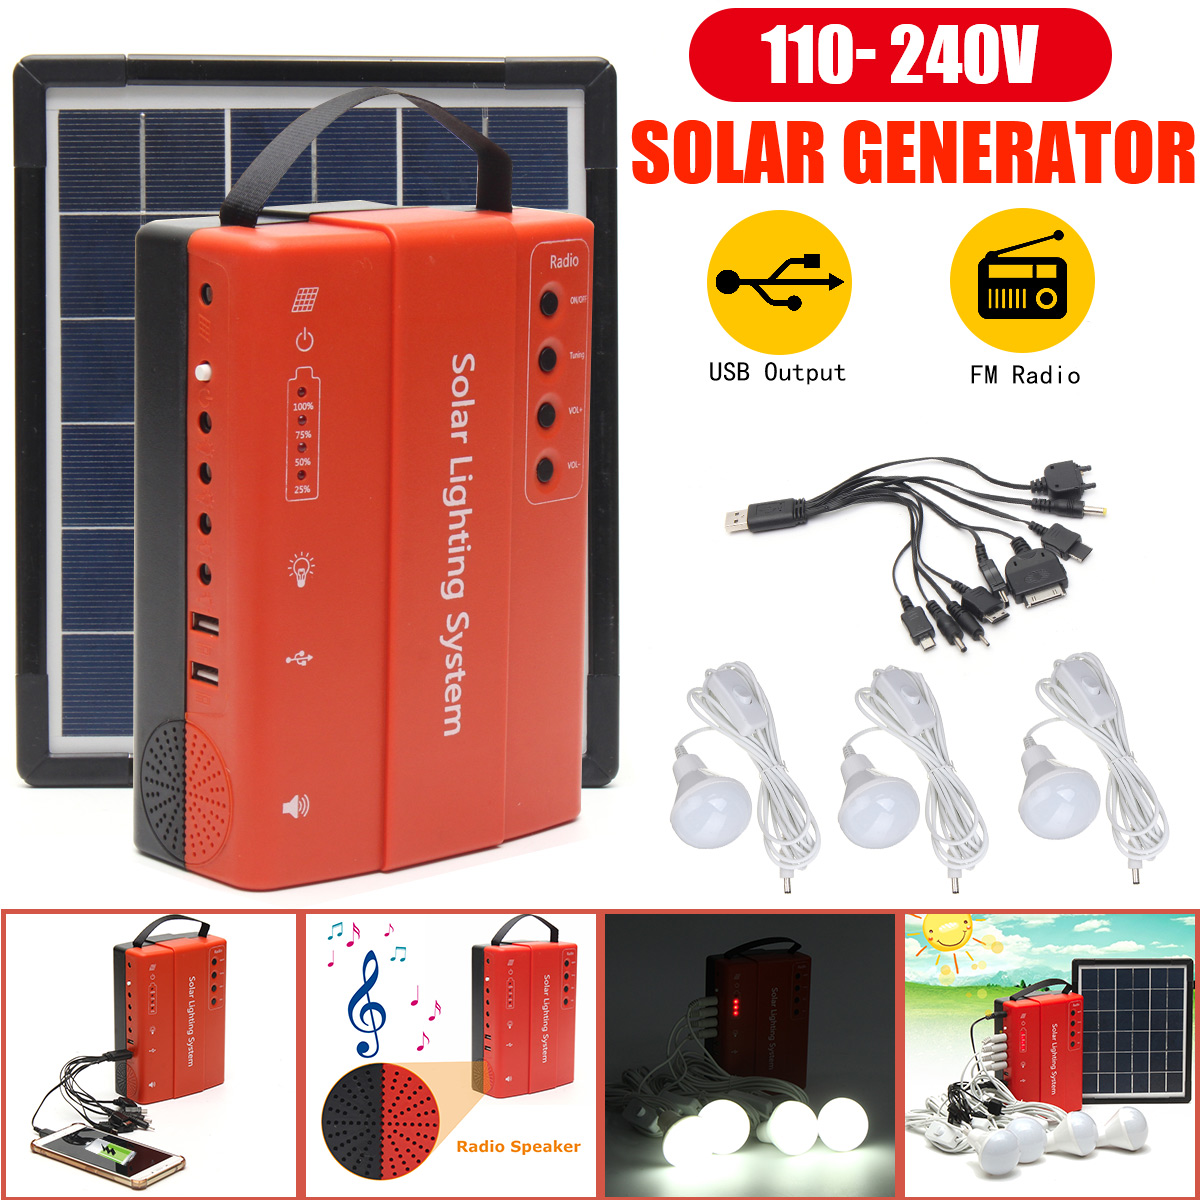 Portable Solar Panel Power Storage Generator LED Light USB Charger Portable Home Outdoor LED Lighting System Support FM Radio portable dc solar panel charging generator power supply board charger radio mp3 flashlight mobile led lighting system outdoor